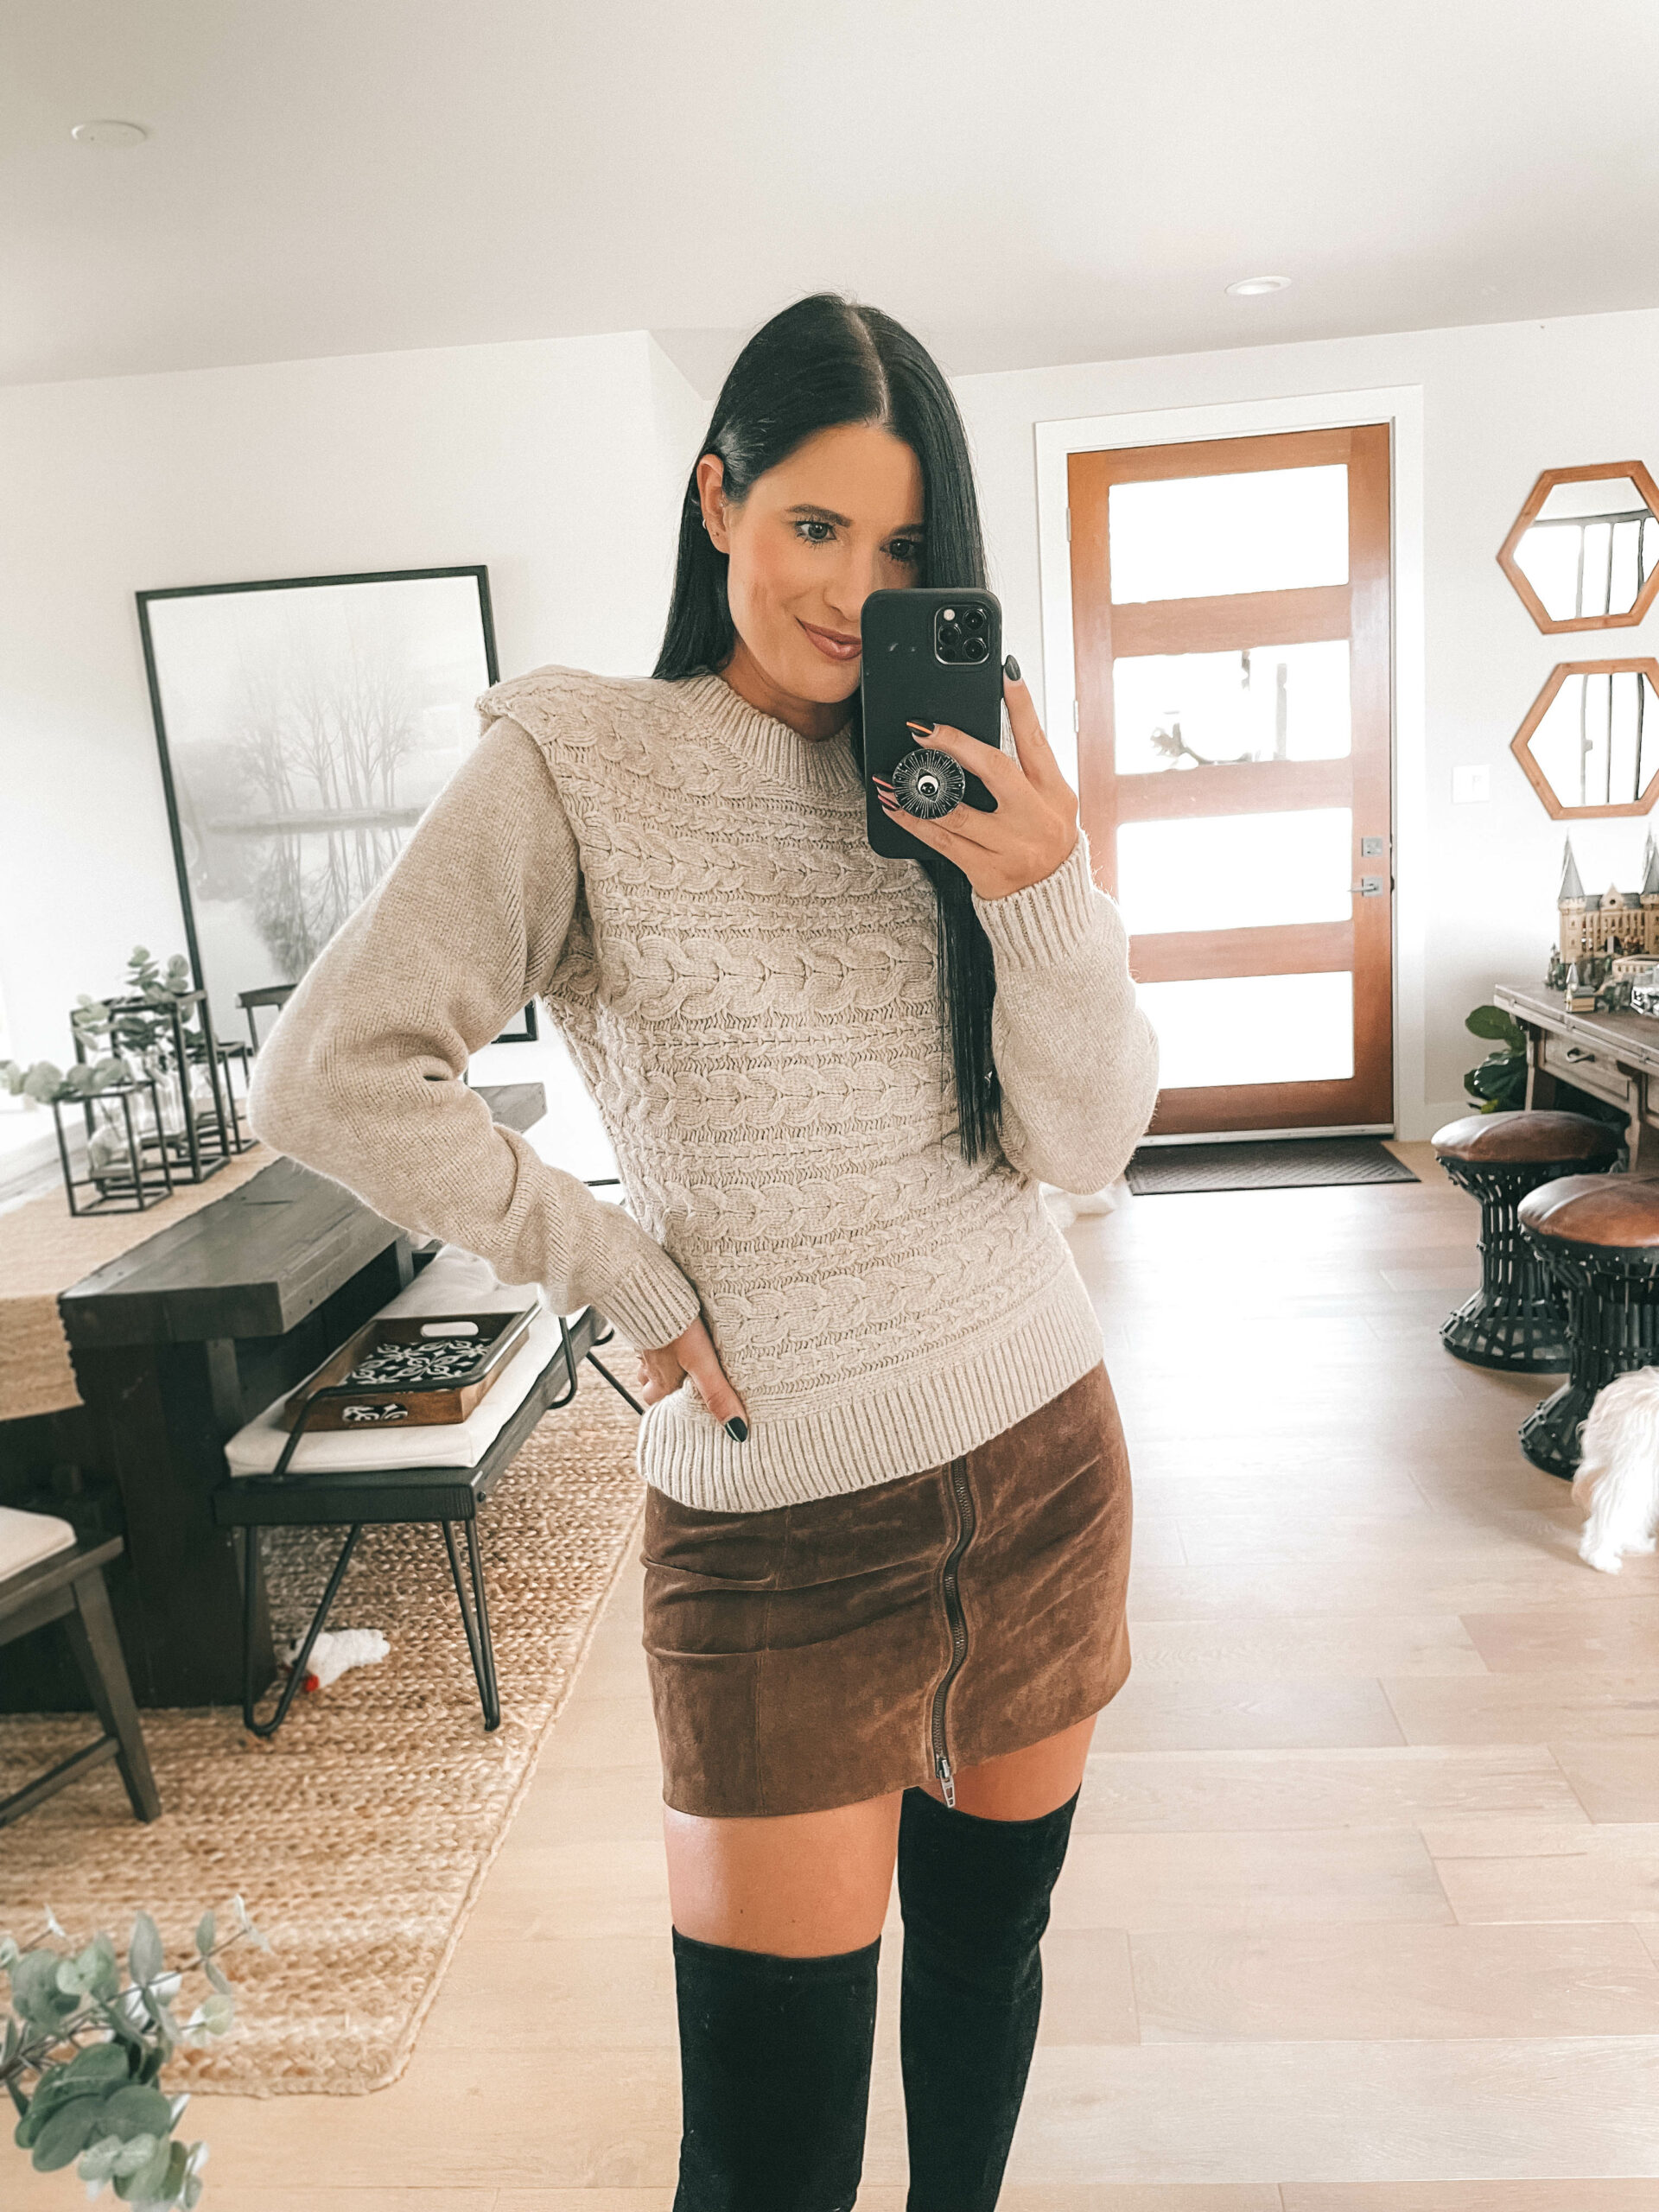 Nordstrom Anniversary Sale by popular Austin fashion blog, Dressed to Kill: image of a woman wearing a tan sweater, brown suede skirt, and black over the knee boots.